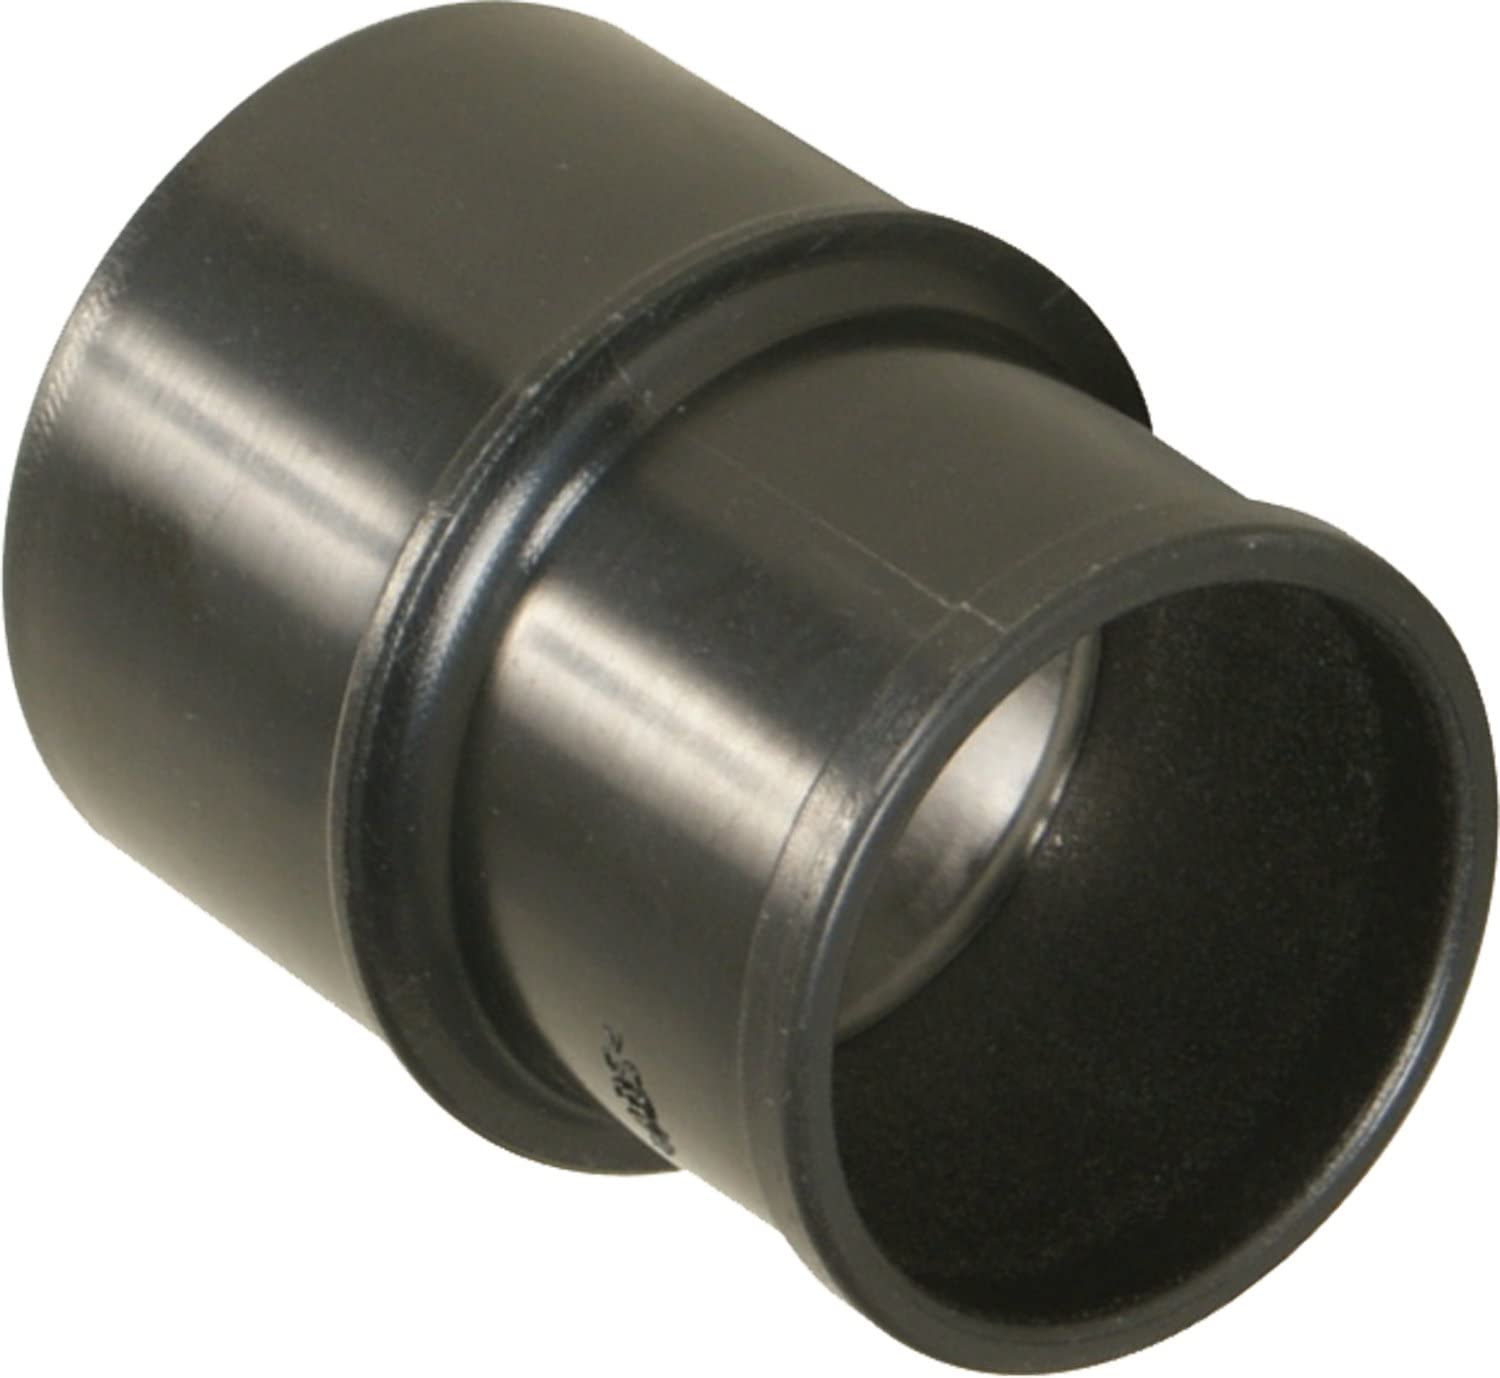 Details about  /Drilling dust nozzle for Makita DCL180Z 18V Vacuum adaptor catcher attachment